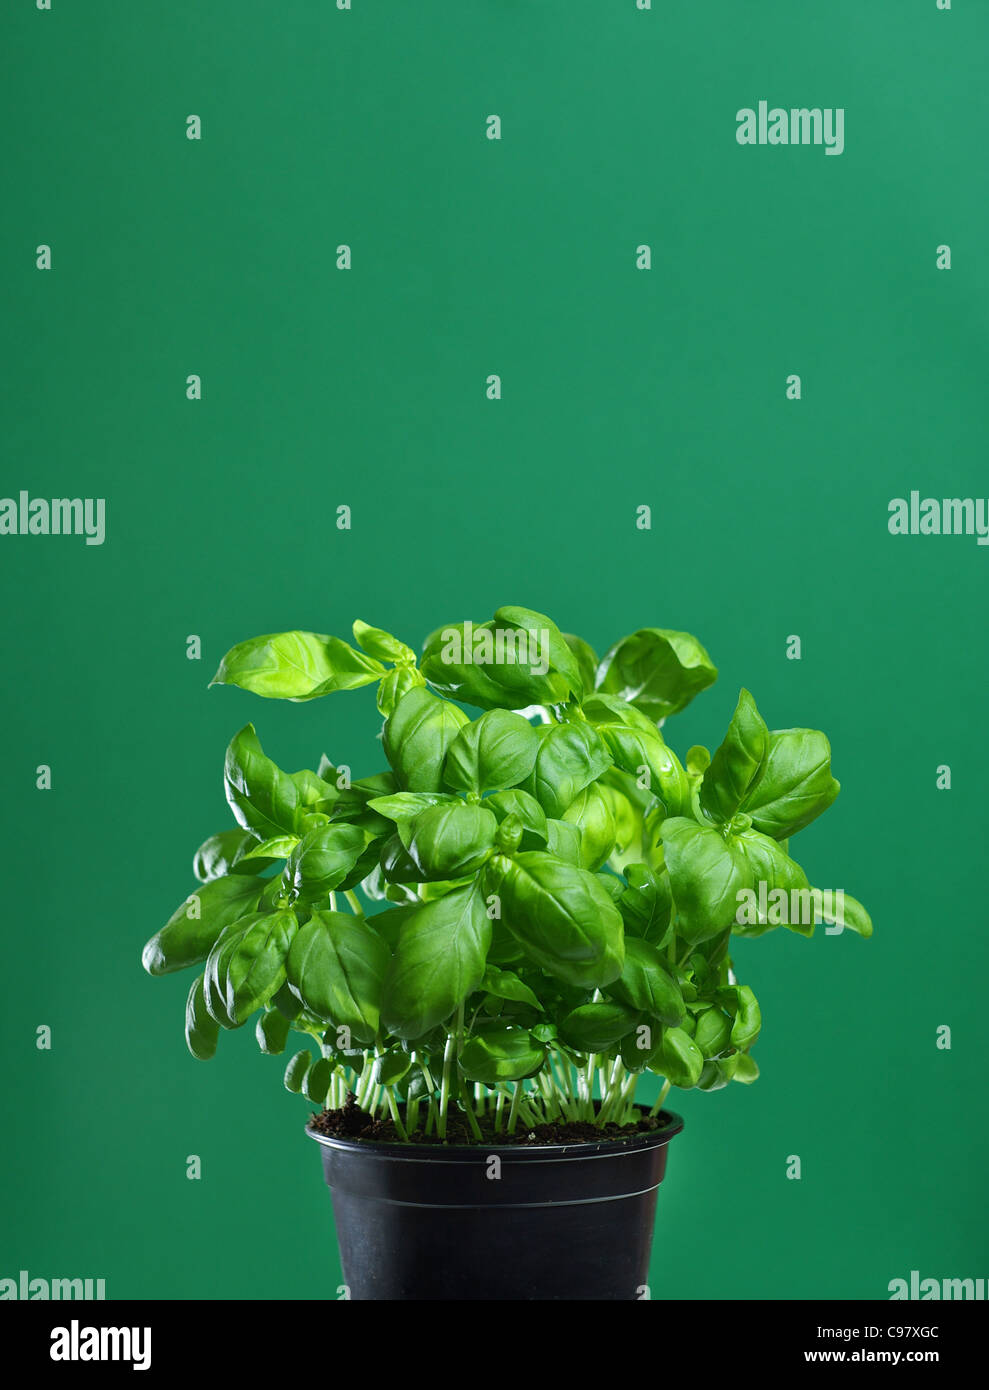 Fresh basil in a black pot on a green background - Stock Image